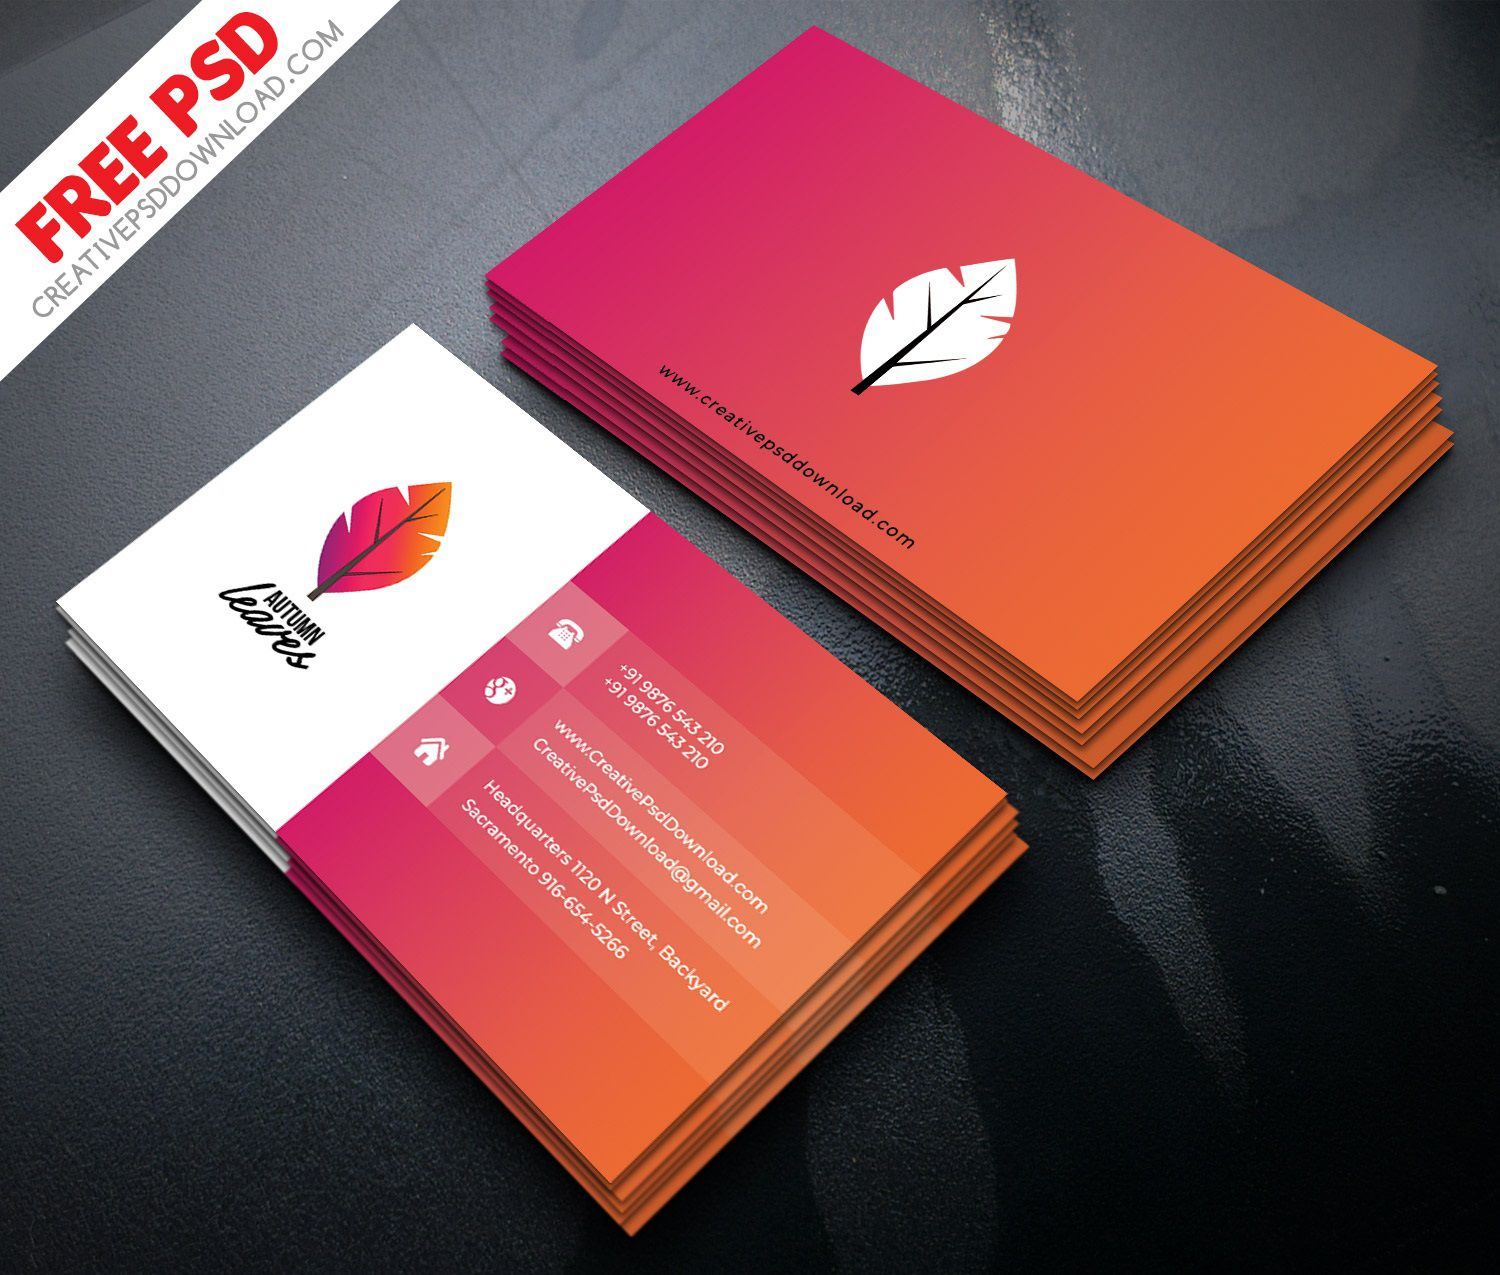 008 Imposing Free Photoshop Busines Card Template Download Highest Clarity  Adobe Psd Visiting DesignFull